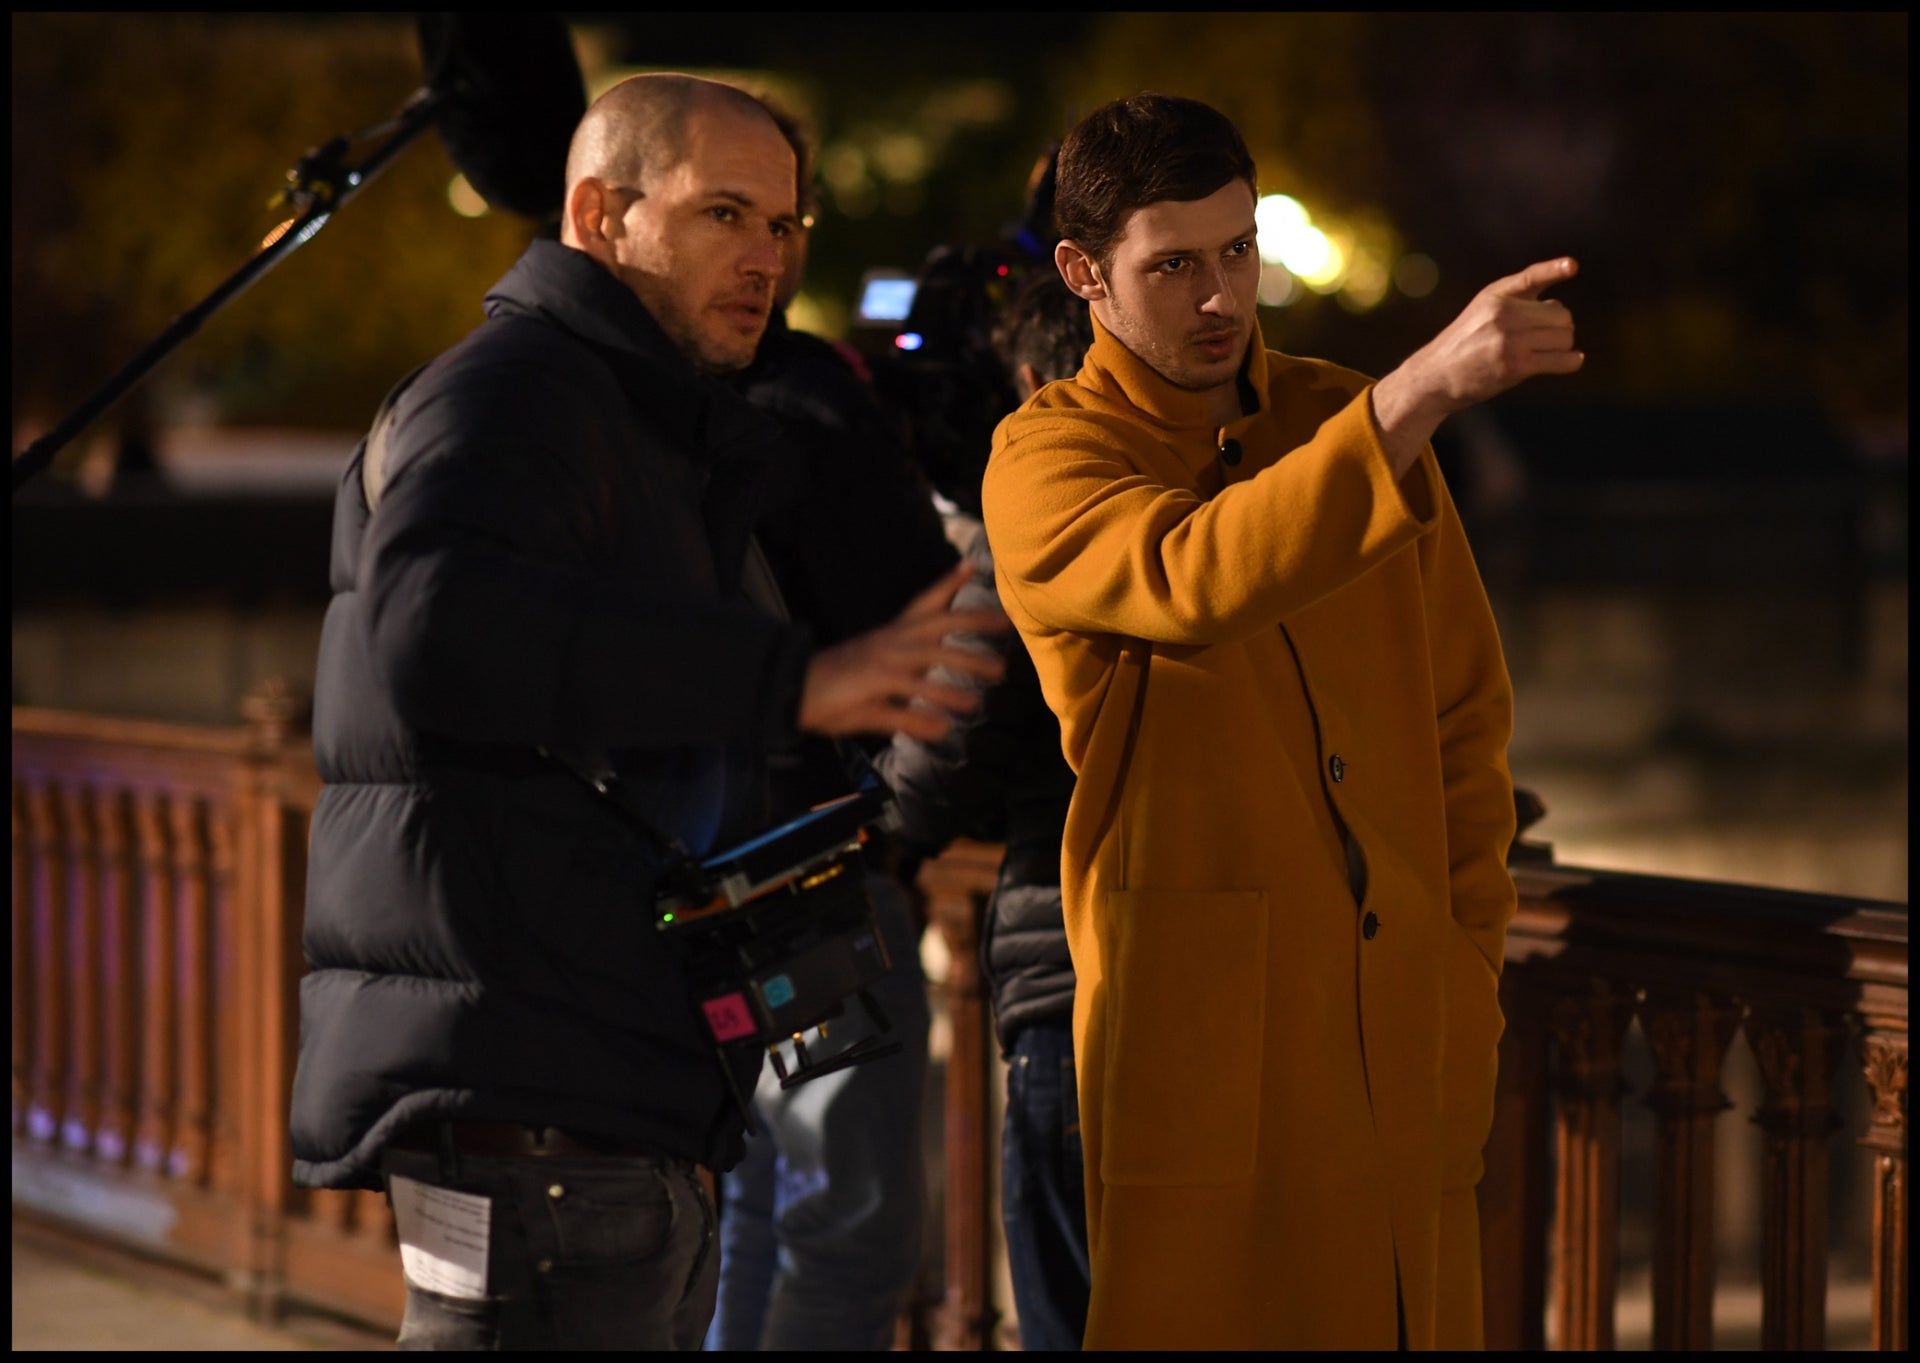 Mercier, right and Lapid on the set of 'Synonyms'. 'He told me that it's really interesting that Yoav is a soldier who wanted to contribute something and was an outstanding fighter.'